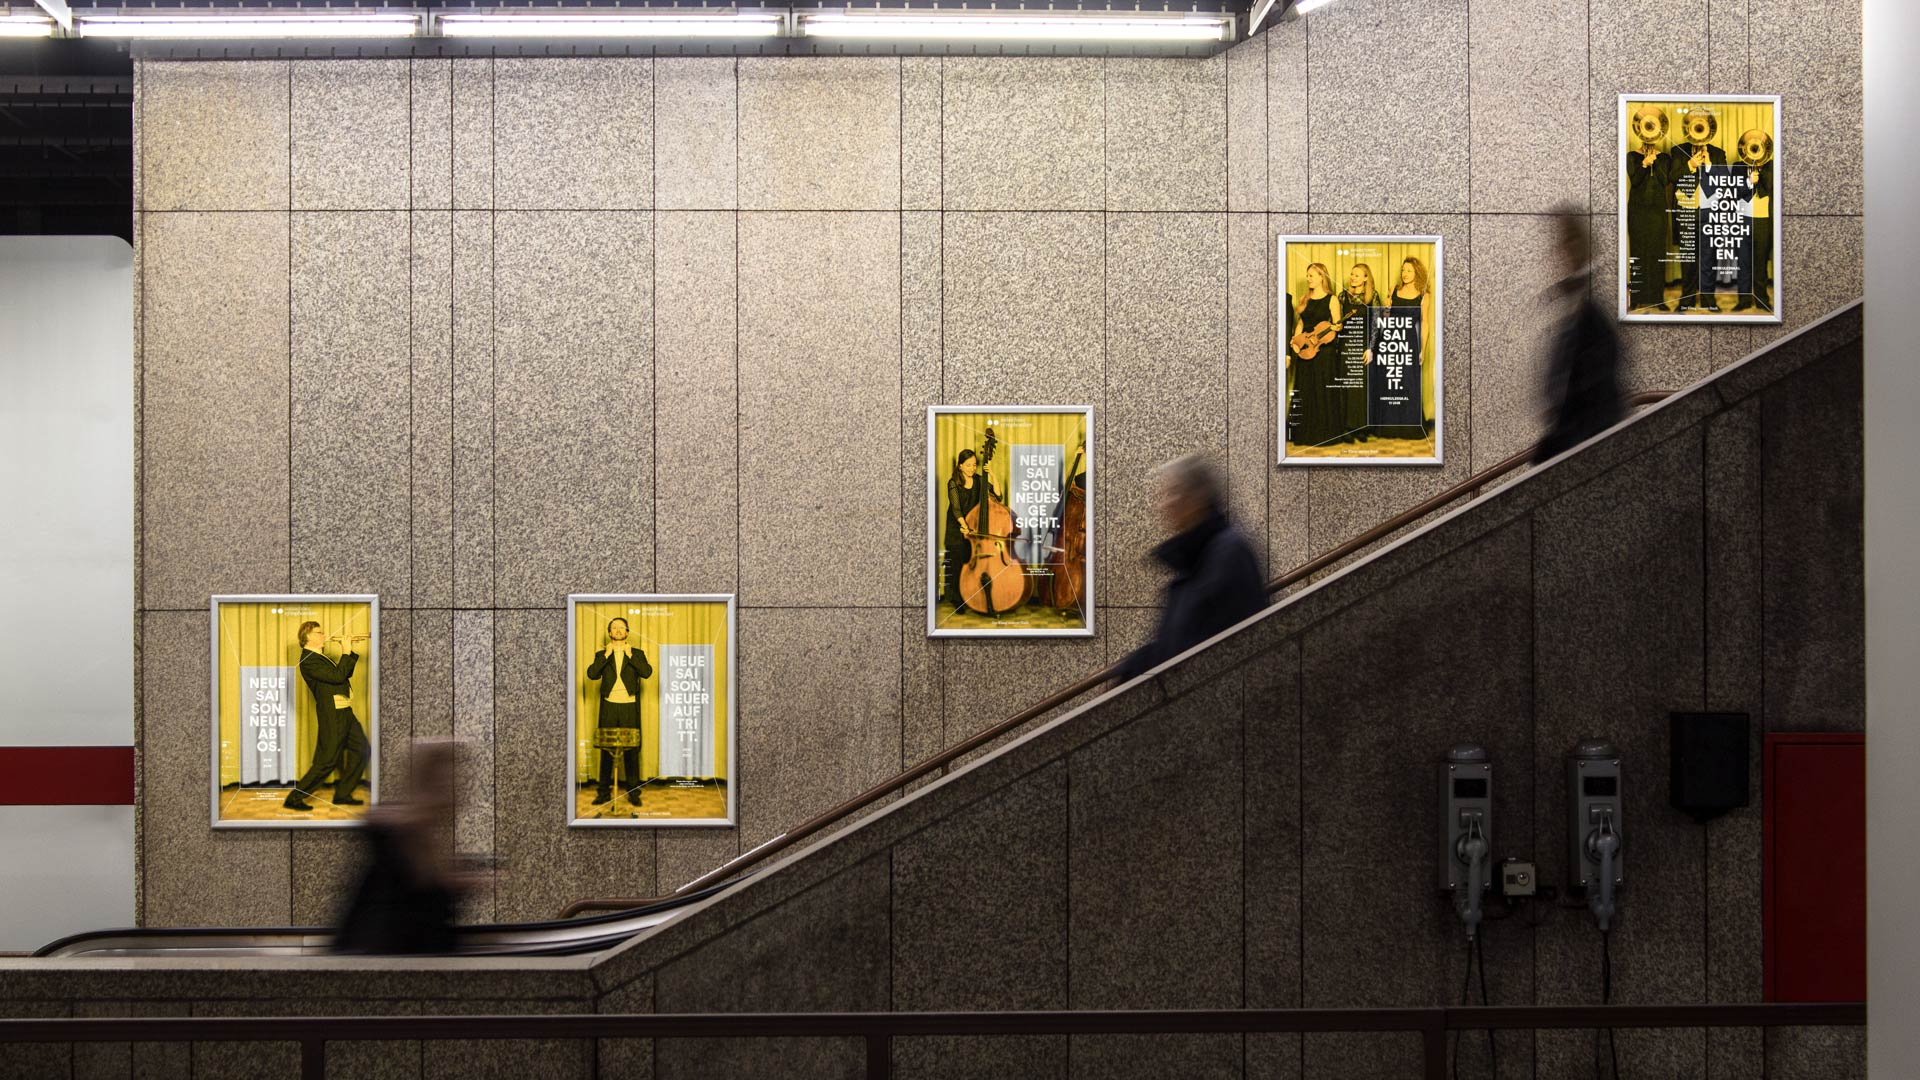 The posters of the Munich Symphony Orchestra hang next to an escalator in Munich Central Station.